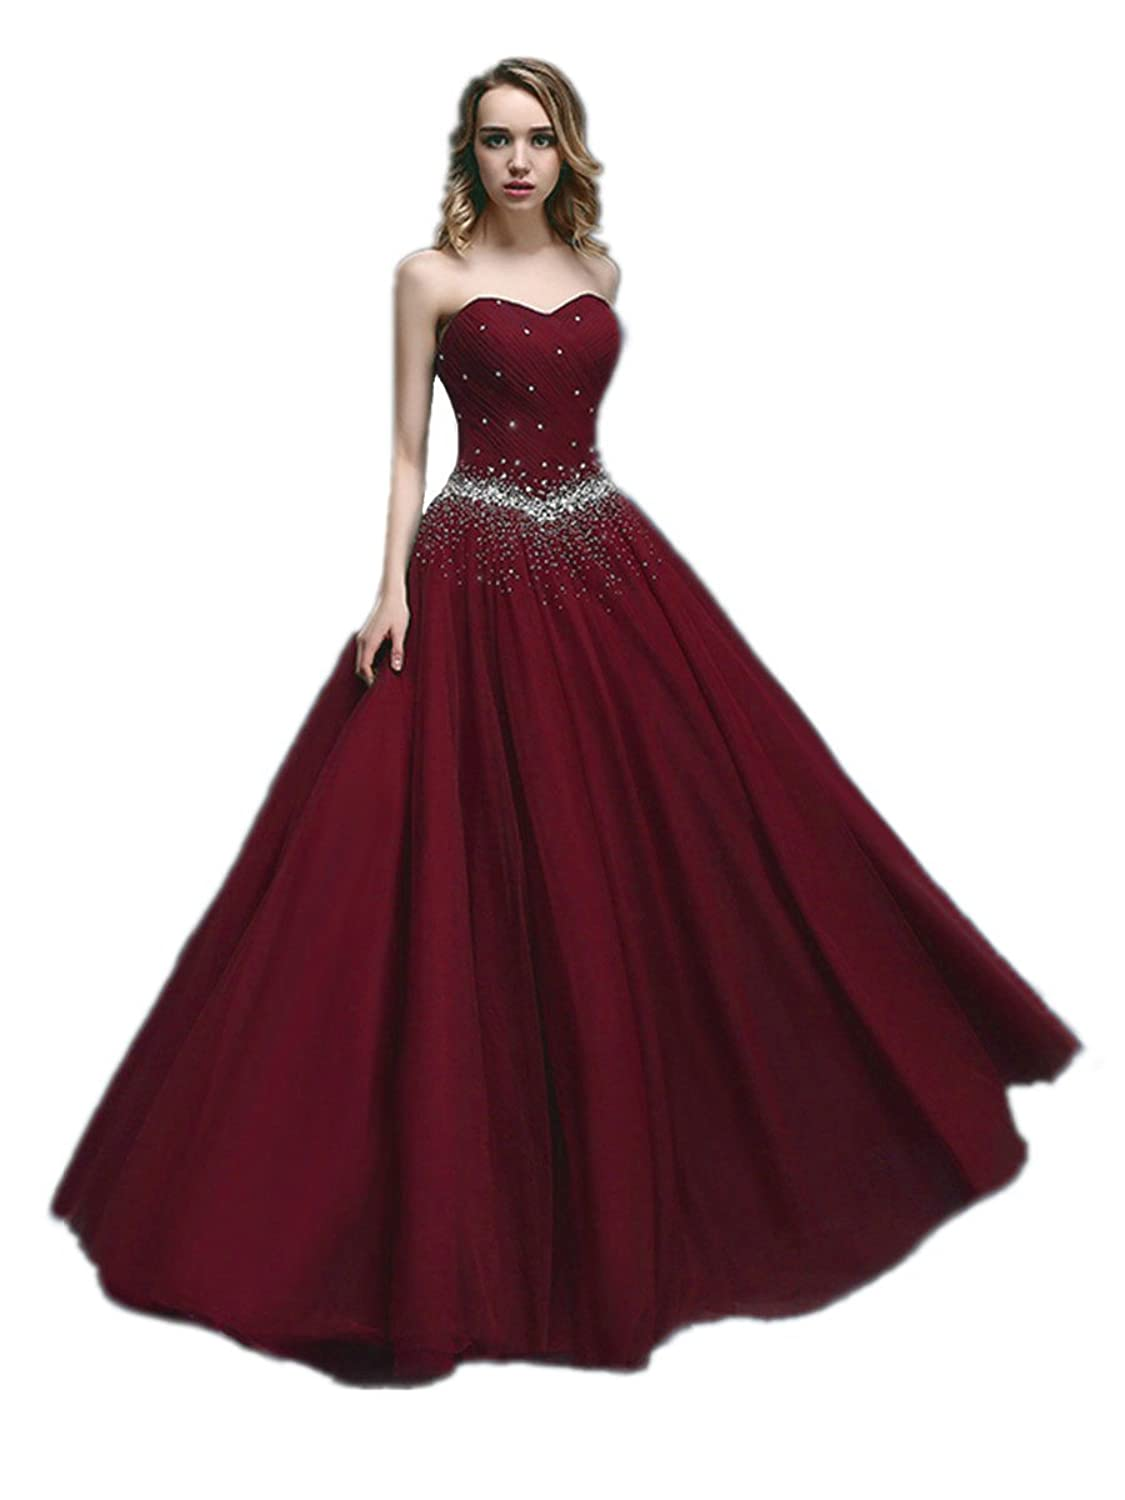 KAIDUN Damen lange Tuell Abendkleid Ballkleid Party kleider: Amazon ...